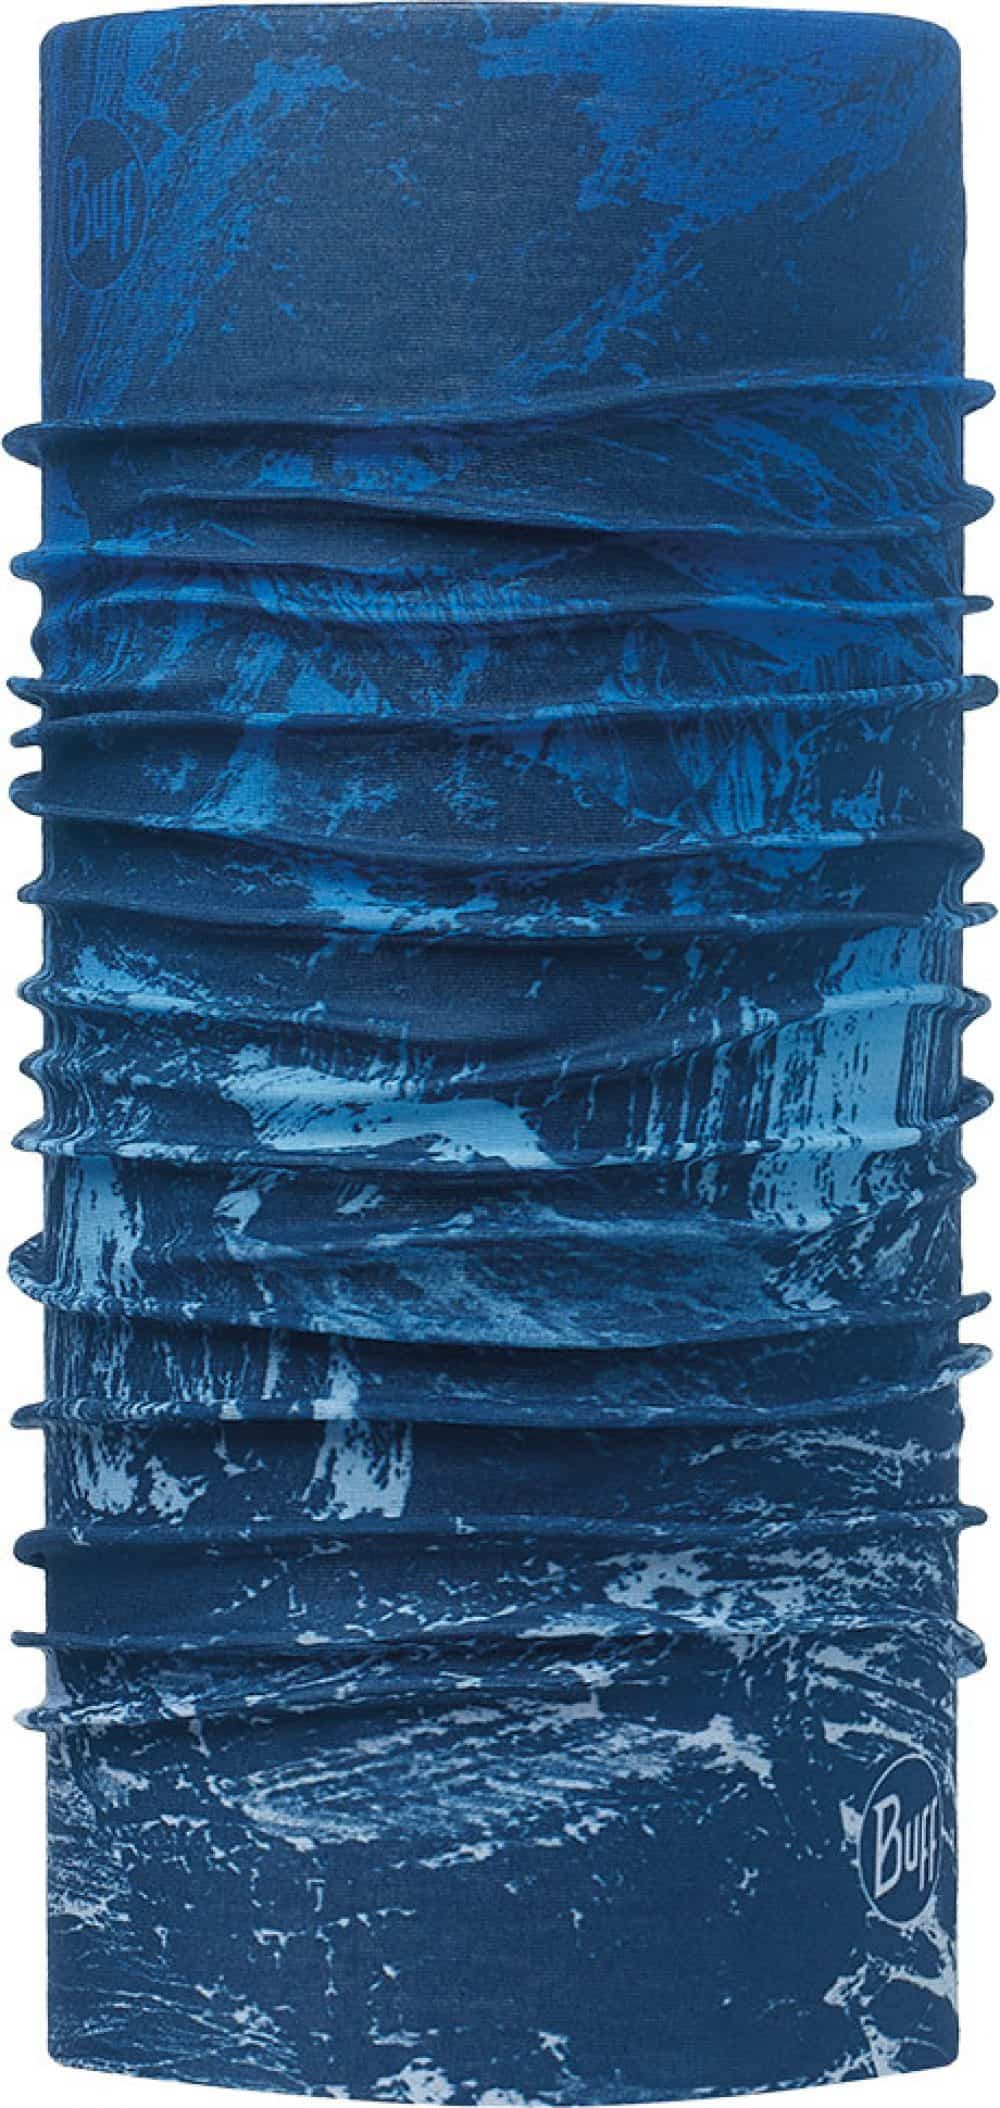 "Image of Original Buff® design ""Mountain Bits Blue"""